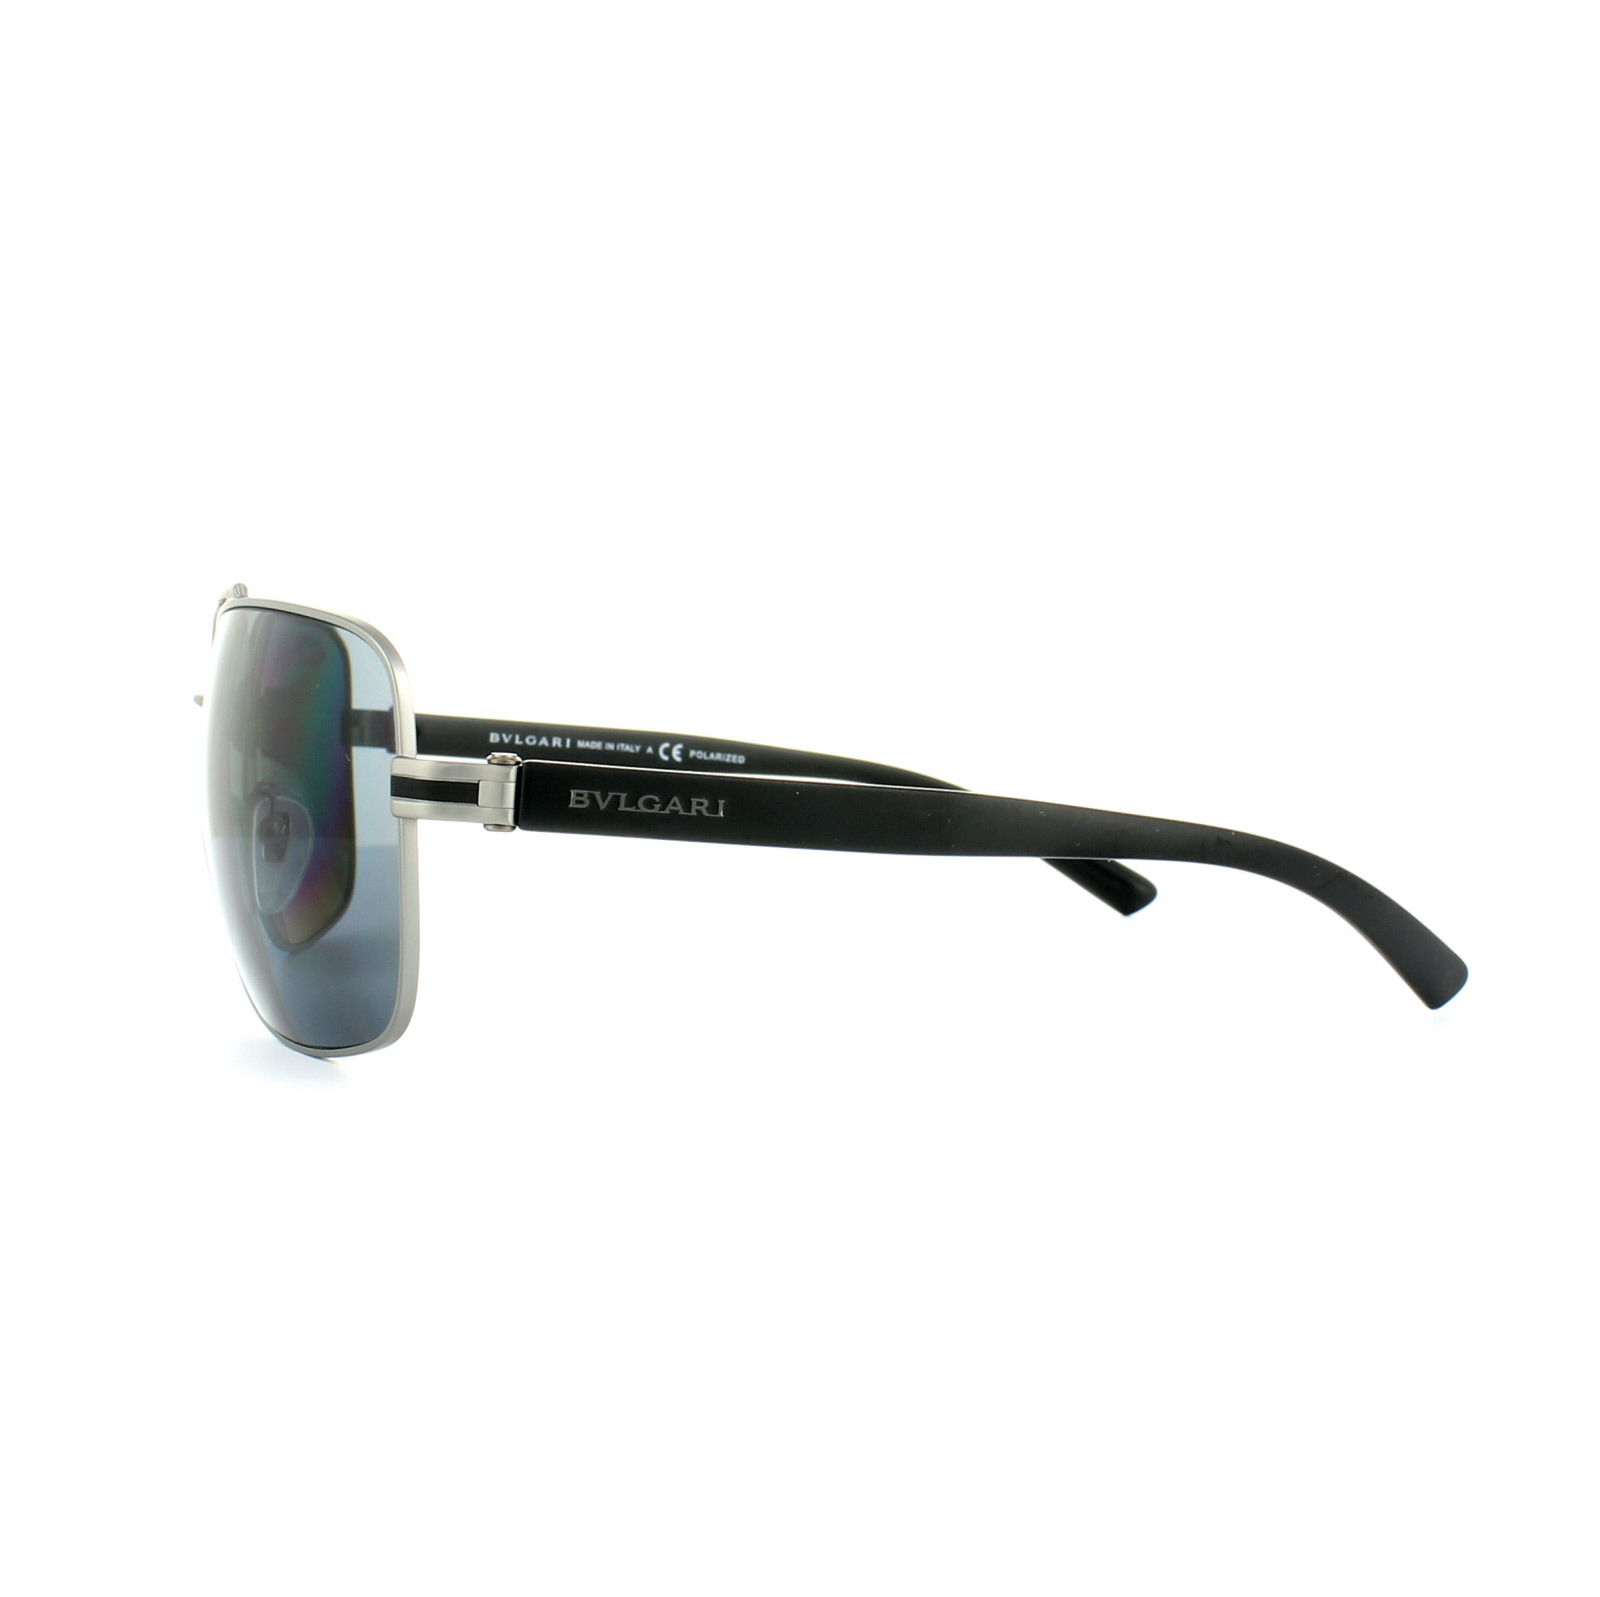 c7ded0636da Cheap Bvlgari 5038 Sunglasses - Discounted Sunglasses